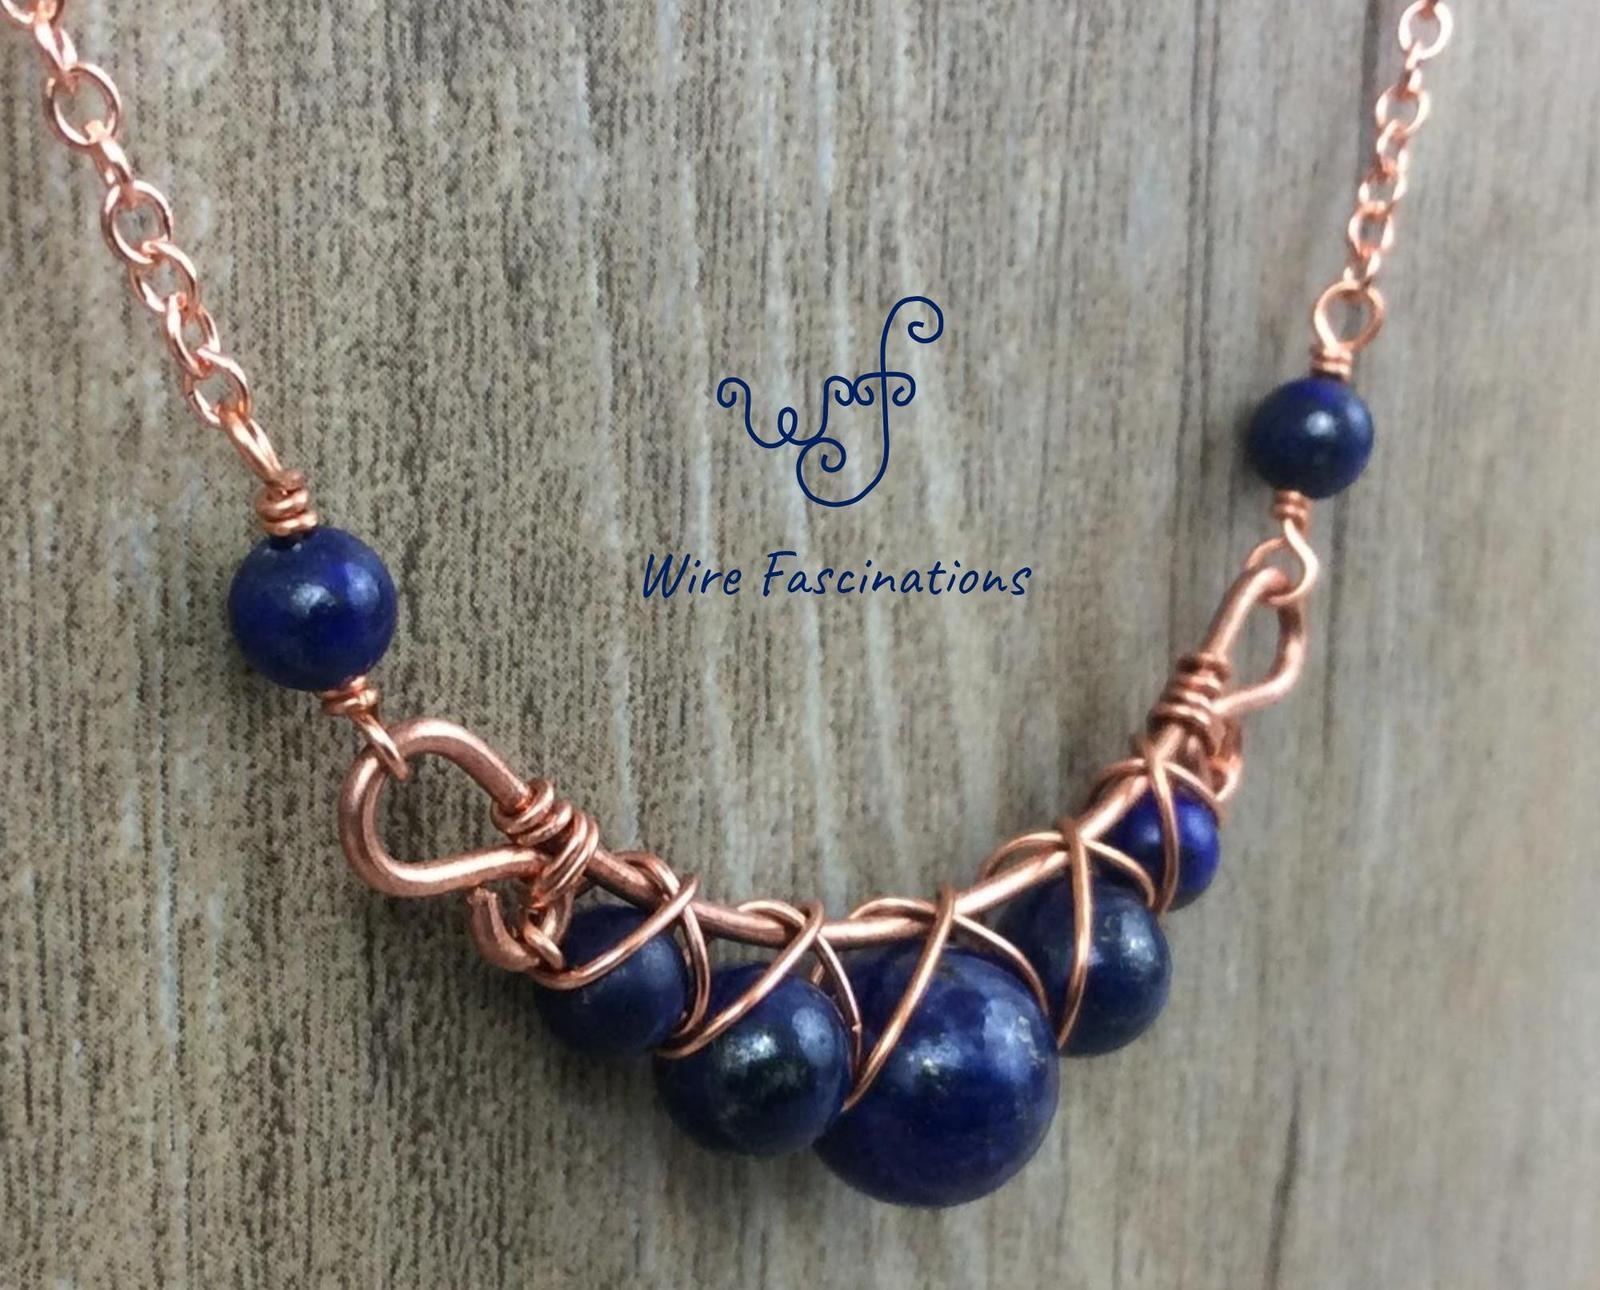 Handmade lapis lazuli necklace: criss cross copper wire wrapped image 2